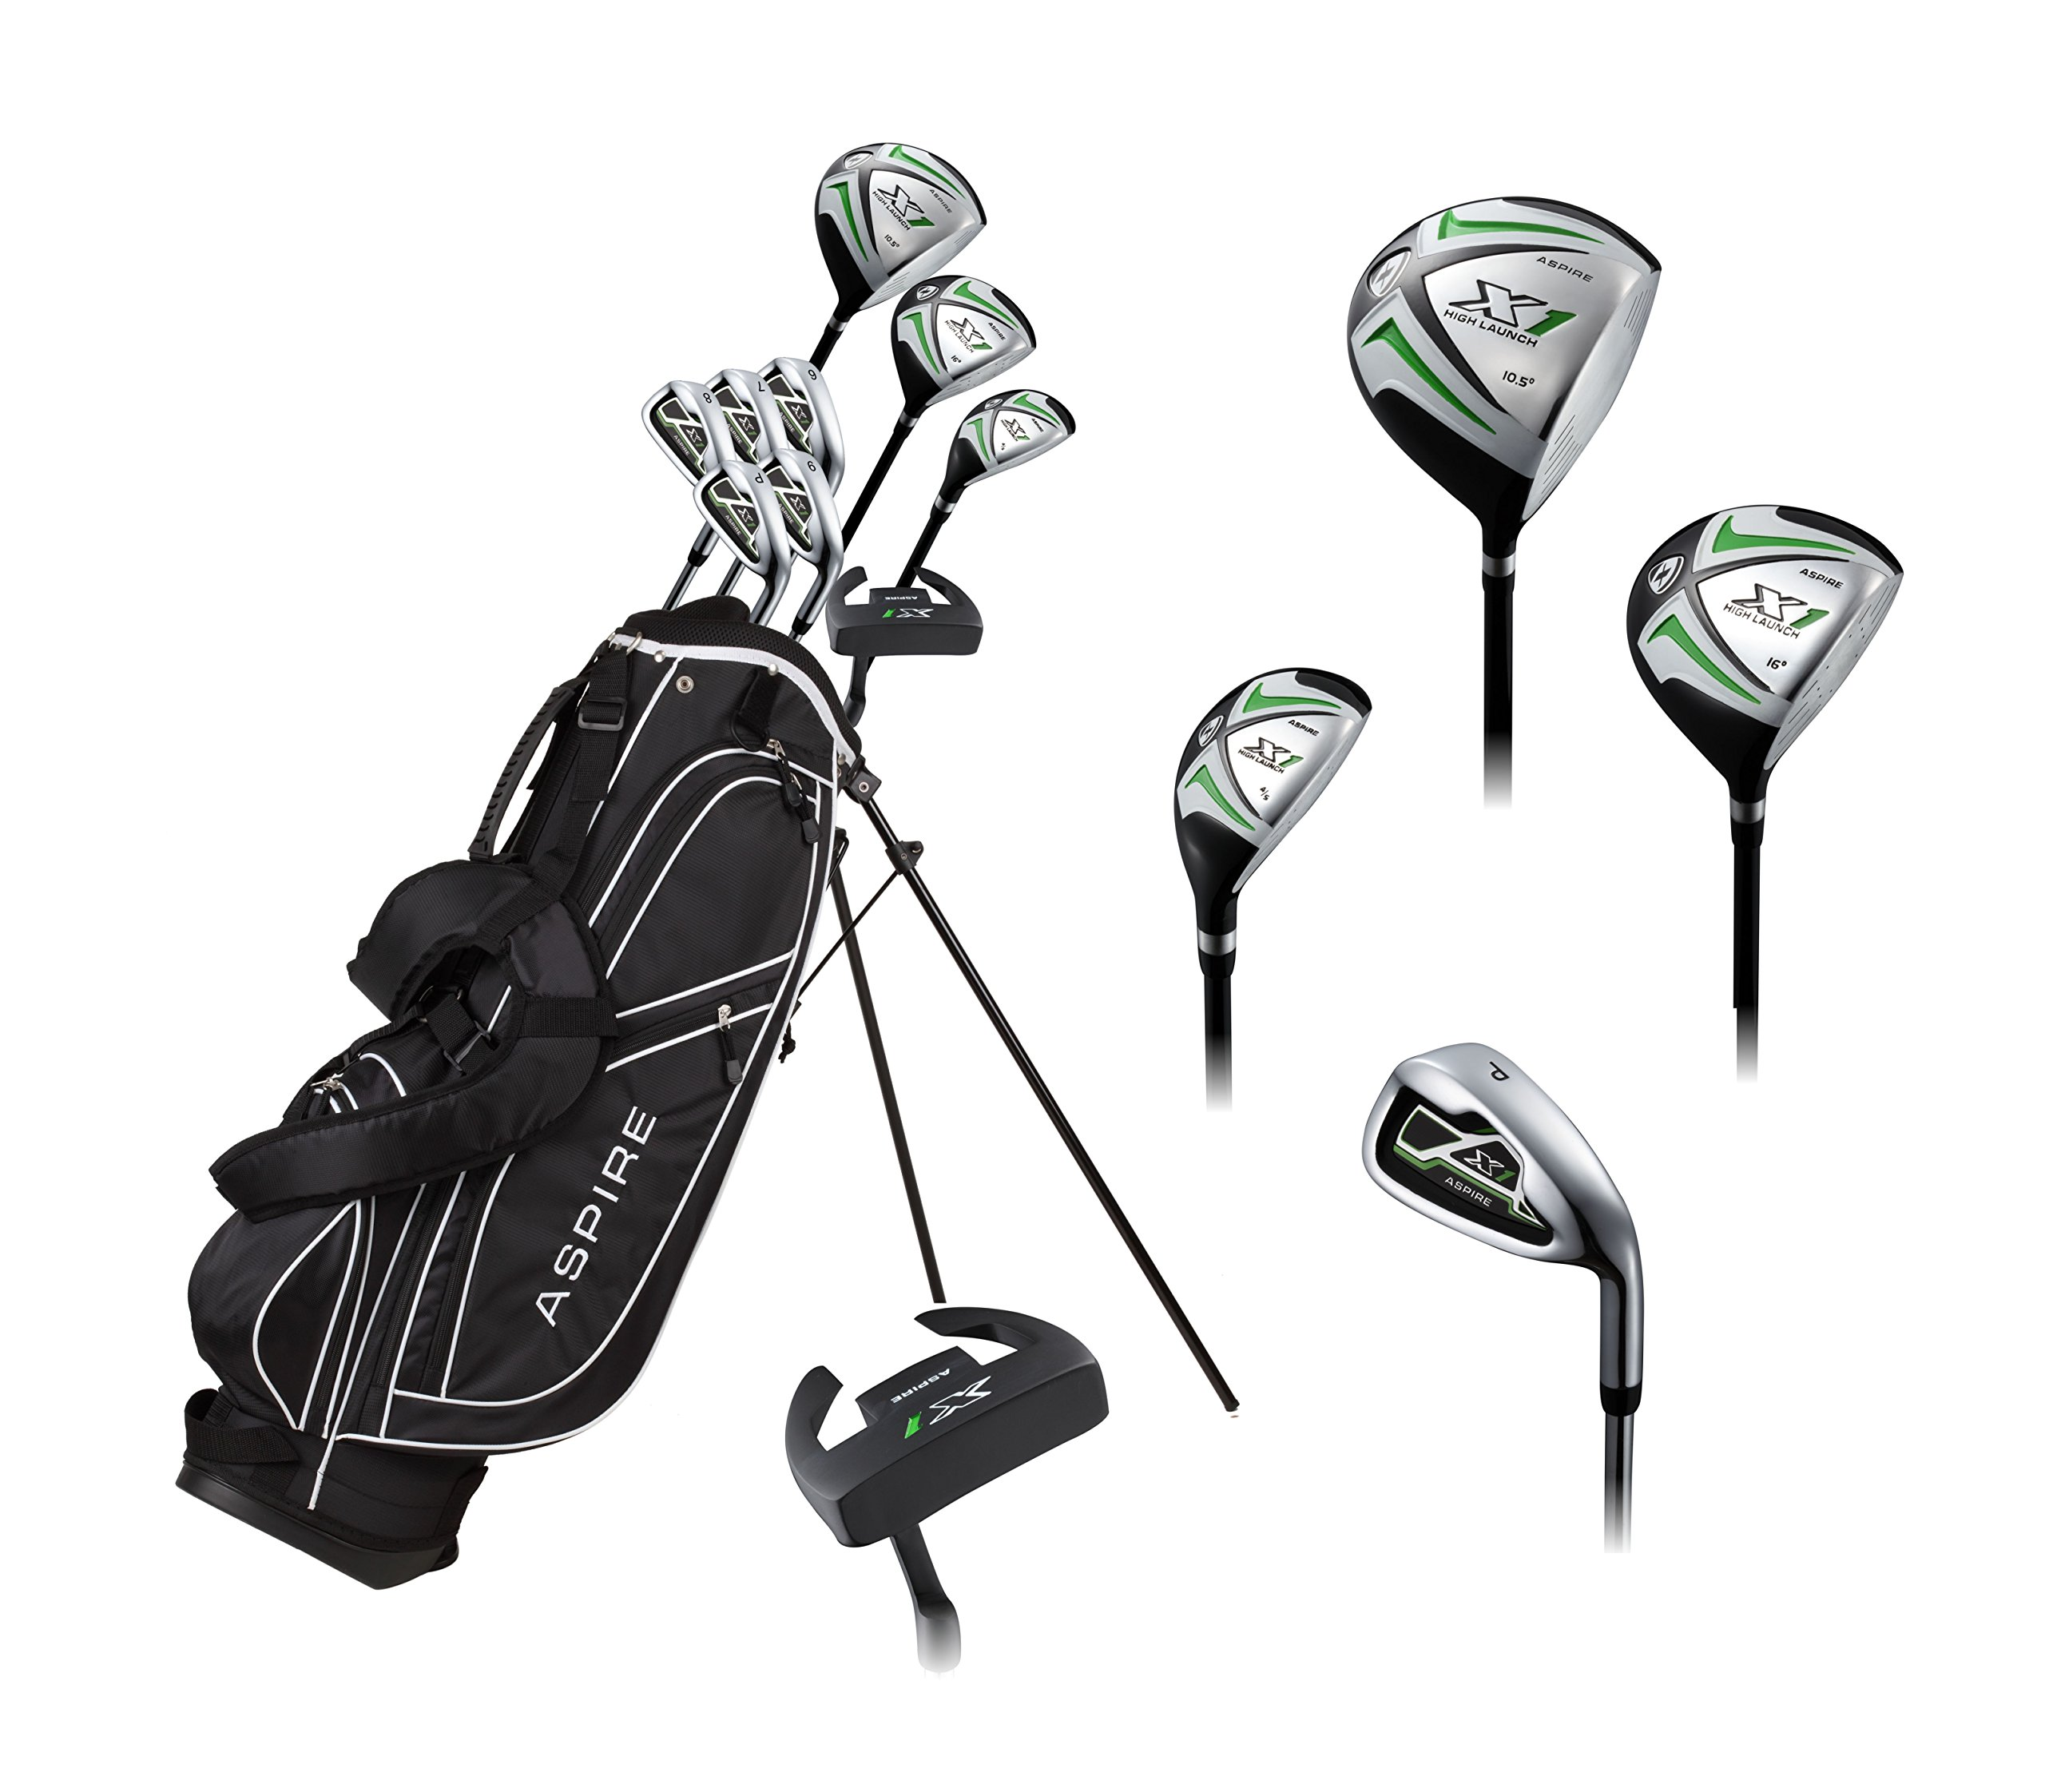 Aspire X1 Men's Complete Golf Set Includes Titanium Driver, S.S. Fairway, S.S. Hybrid, S.S. 6-PW Irons, Putter, Stand Bag, 3 H/C's Right Hand Tall Size for Men 6'1'' and Above!